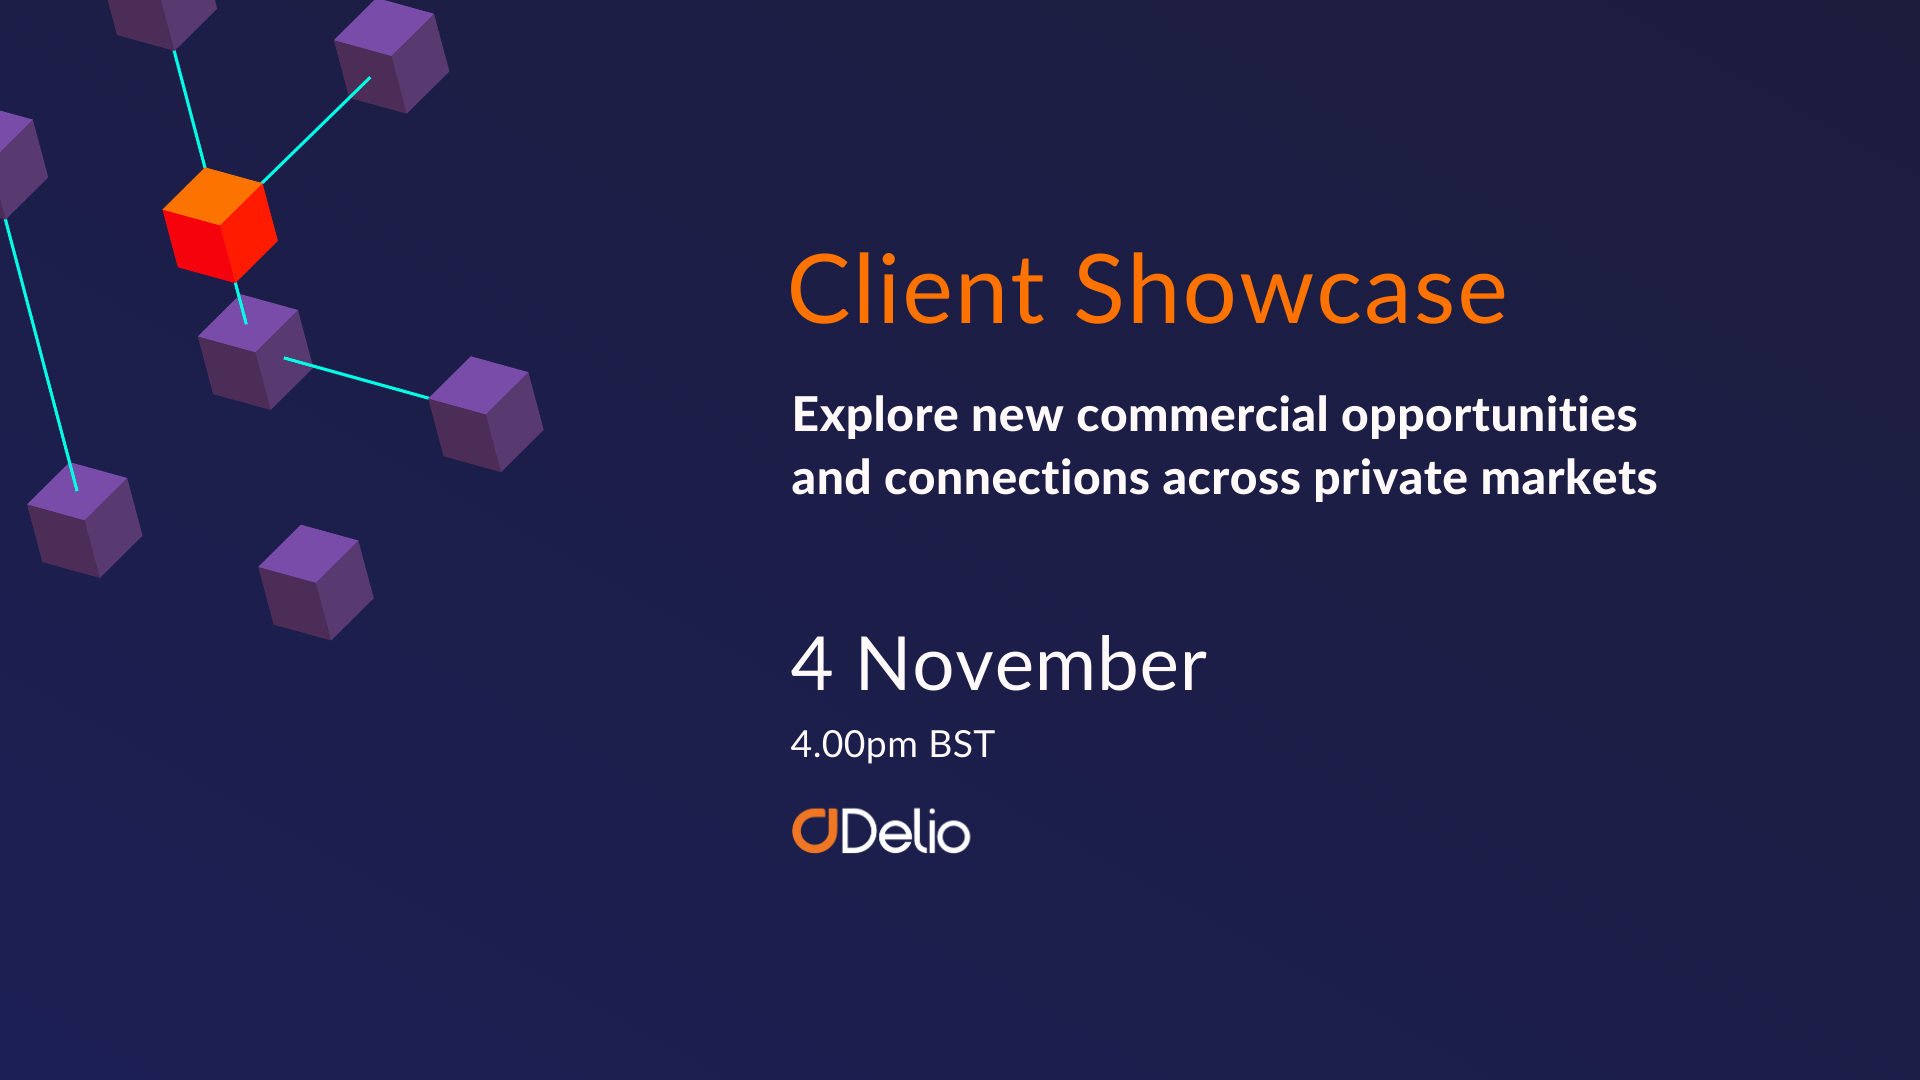 Delio Client Showcase: Introducing The Table Club, Ventura Capital, Front Foot Ventures and The Conduit